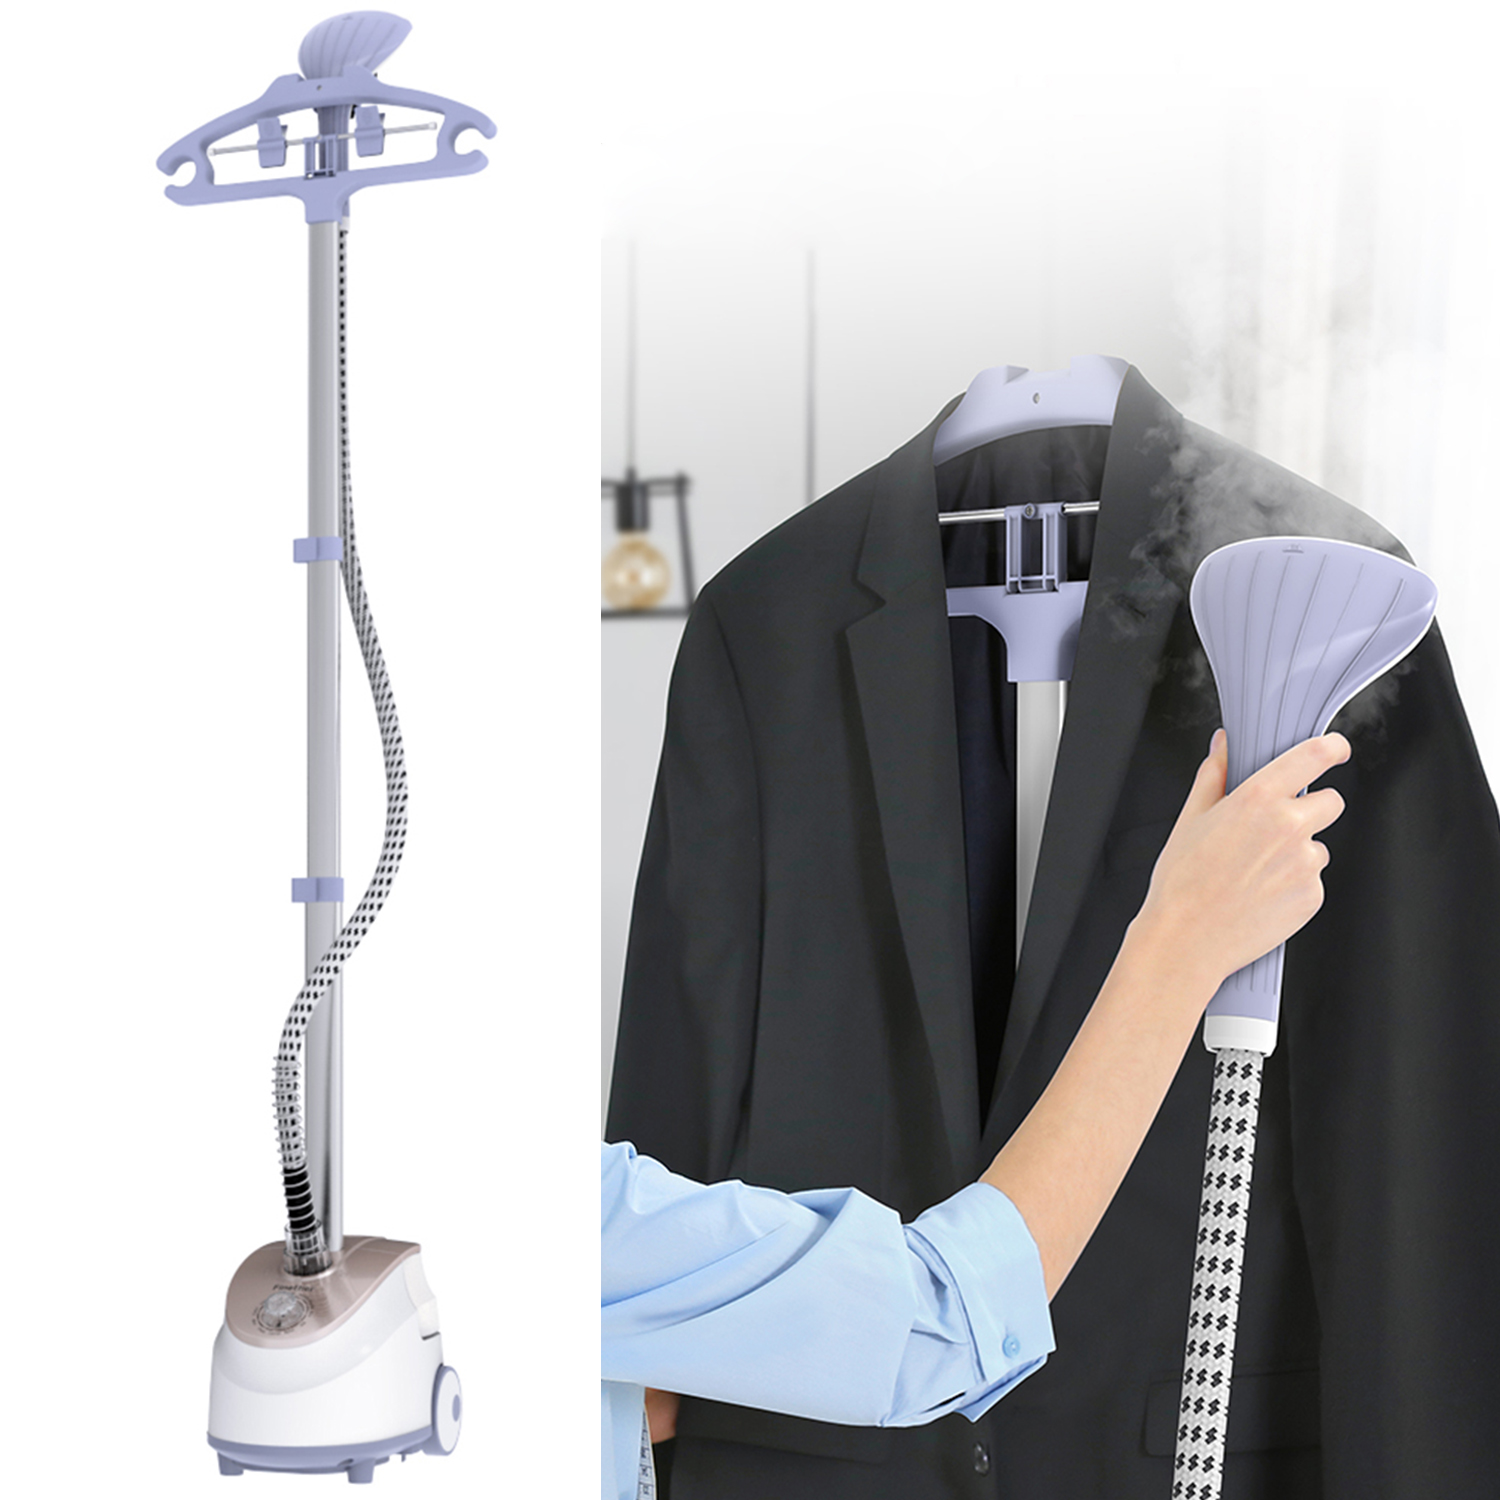 Hendheld 360 Degree Swivel Compact Garment Steamer for in home use, Hanger with 1.6 L water tank